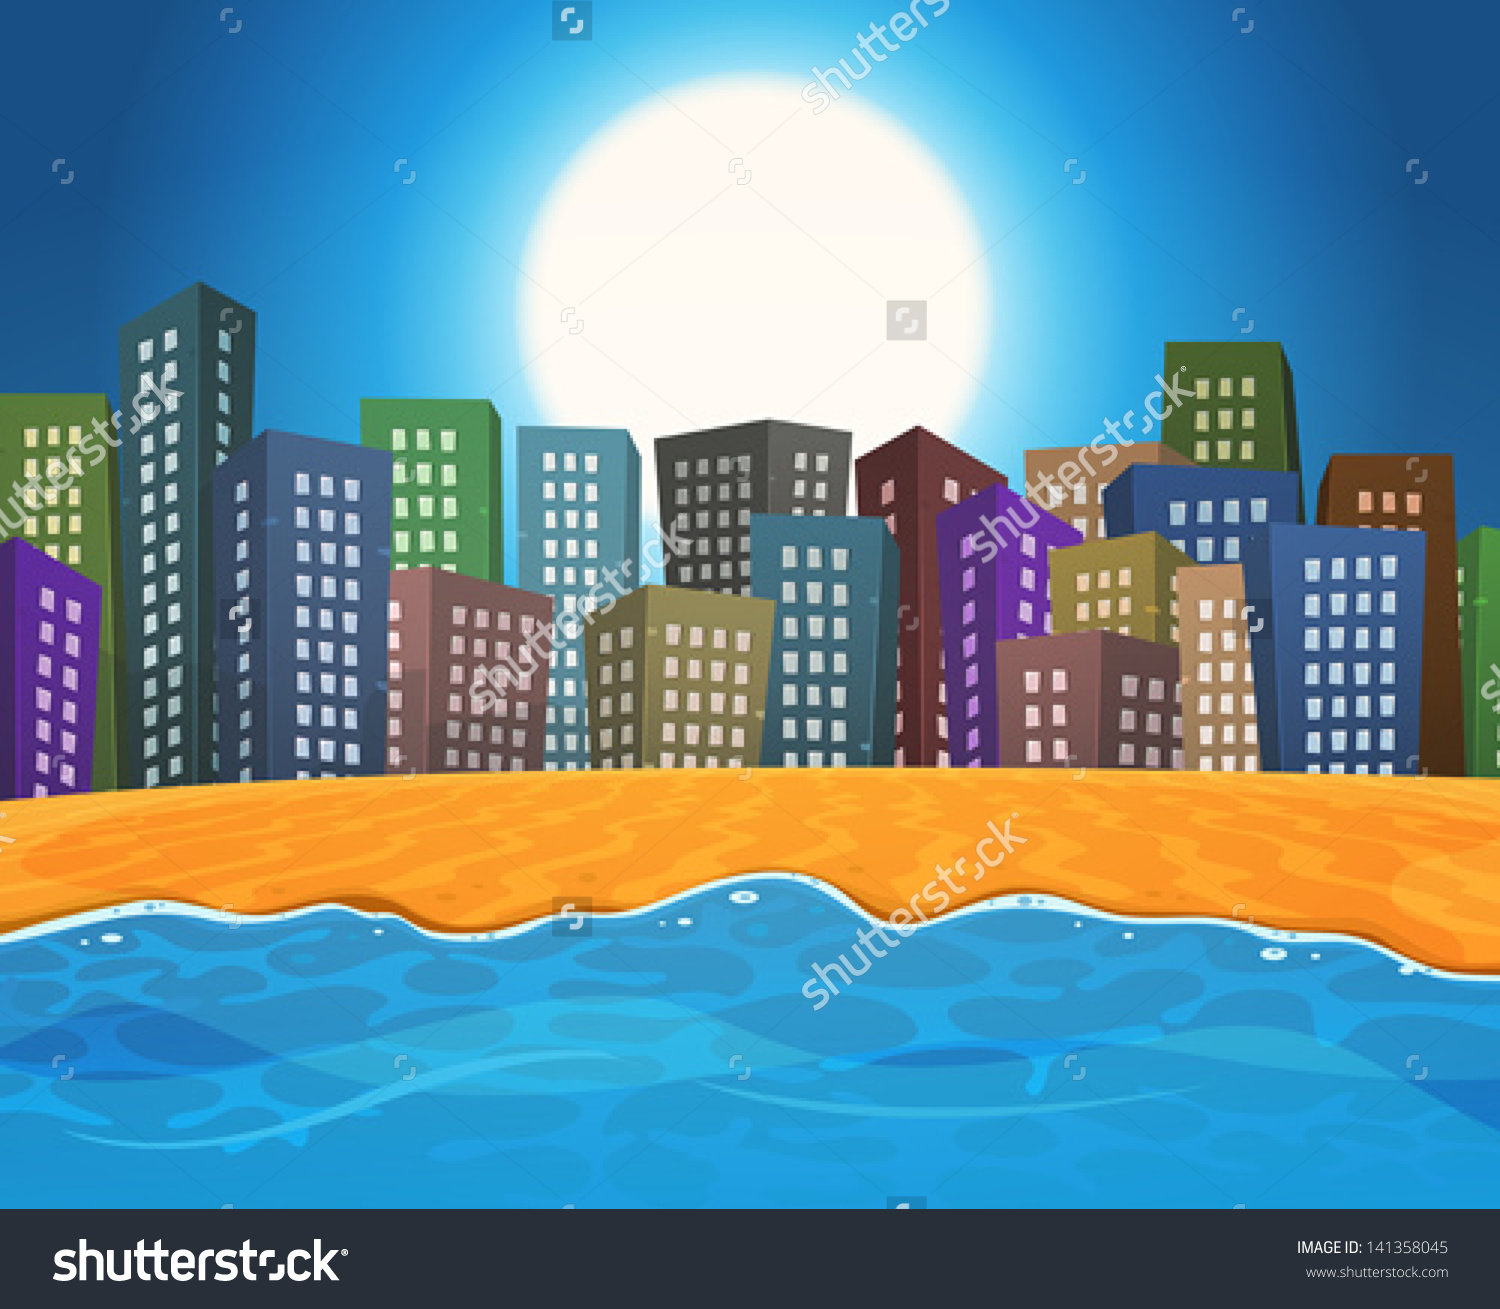 Summer Beach By City Illustration Cartoon Stock Vector 141358045.